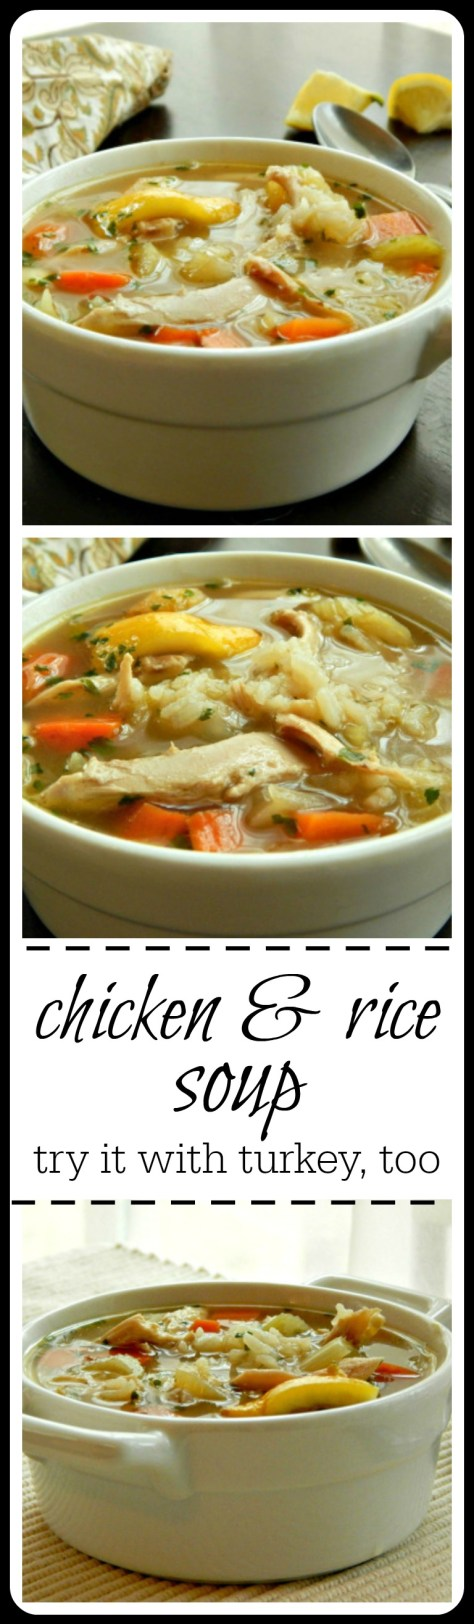 Chicken & Rice Soup - just as good with turkey. There's lots of hints on how to get the BEST rice soup!